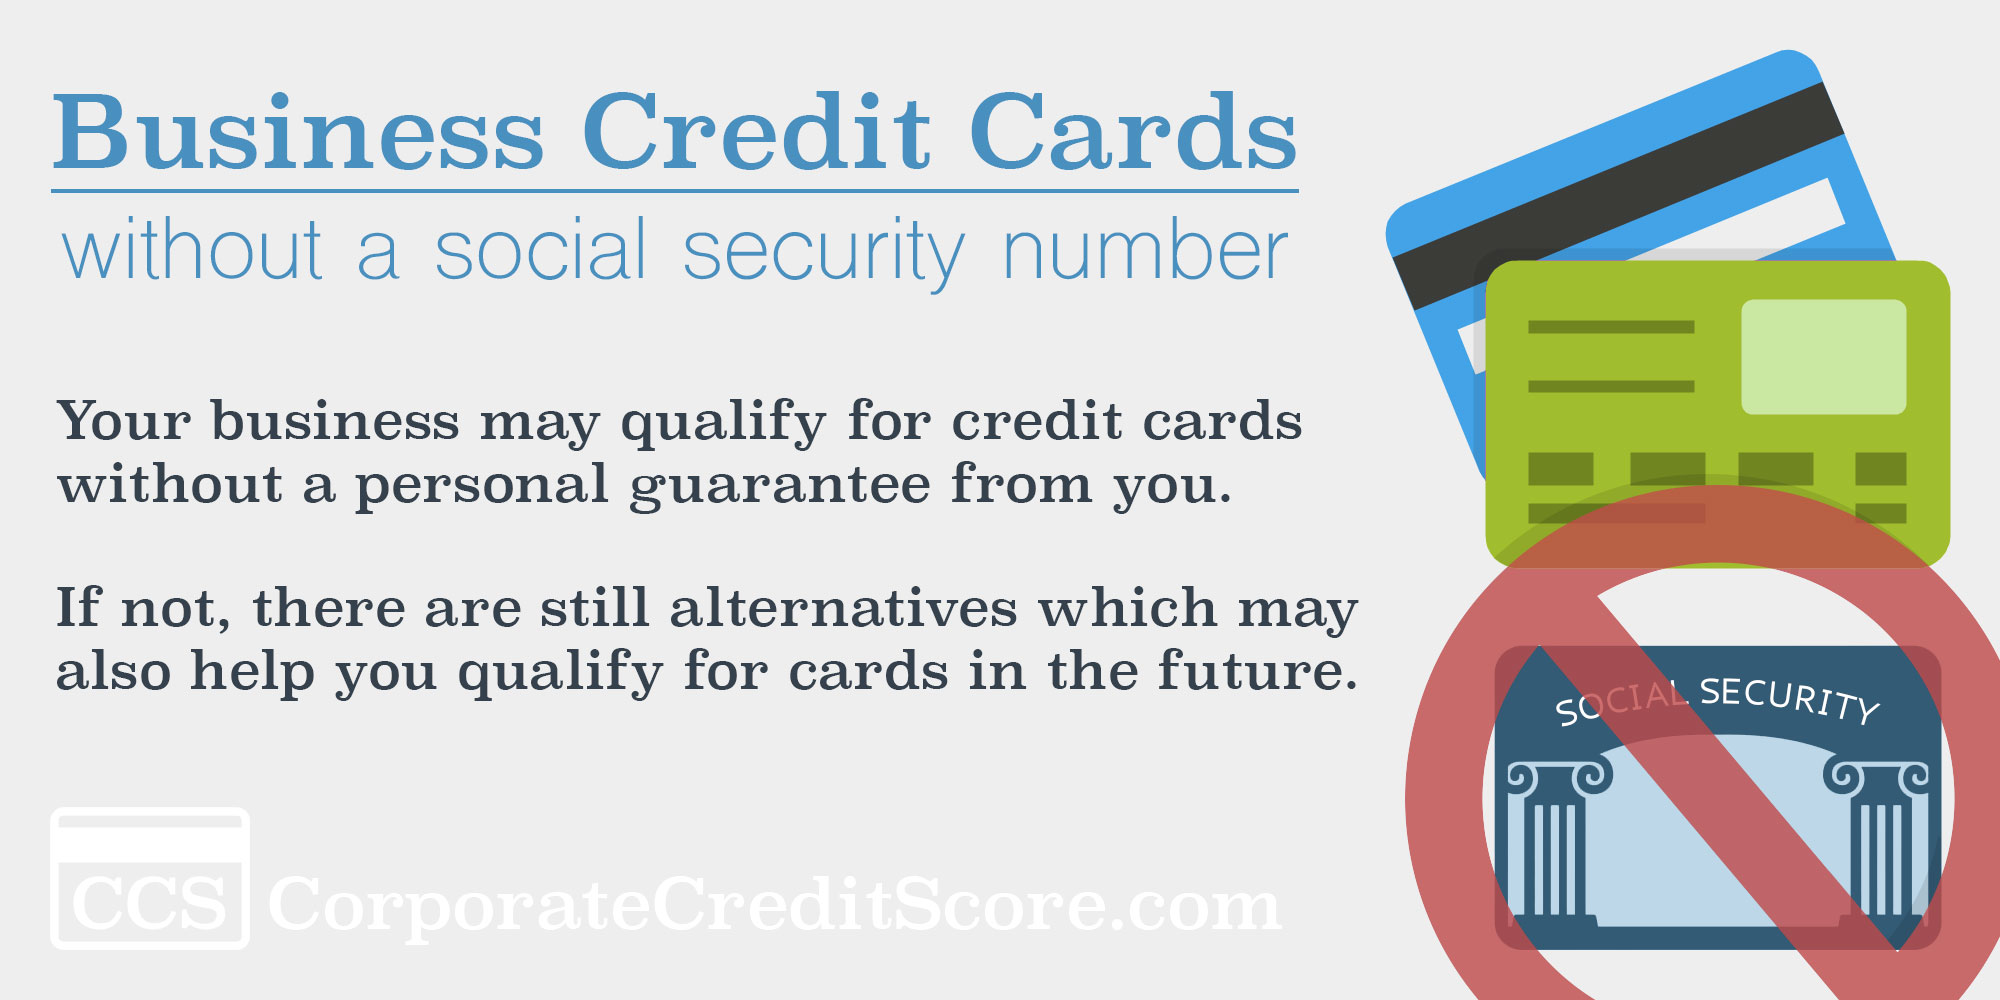 Business credit card no ssn required corporate credit score business credit card no ssn business credit cards without a personal guarantee colourmoves